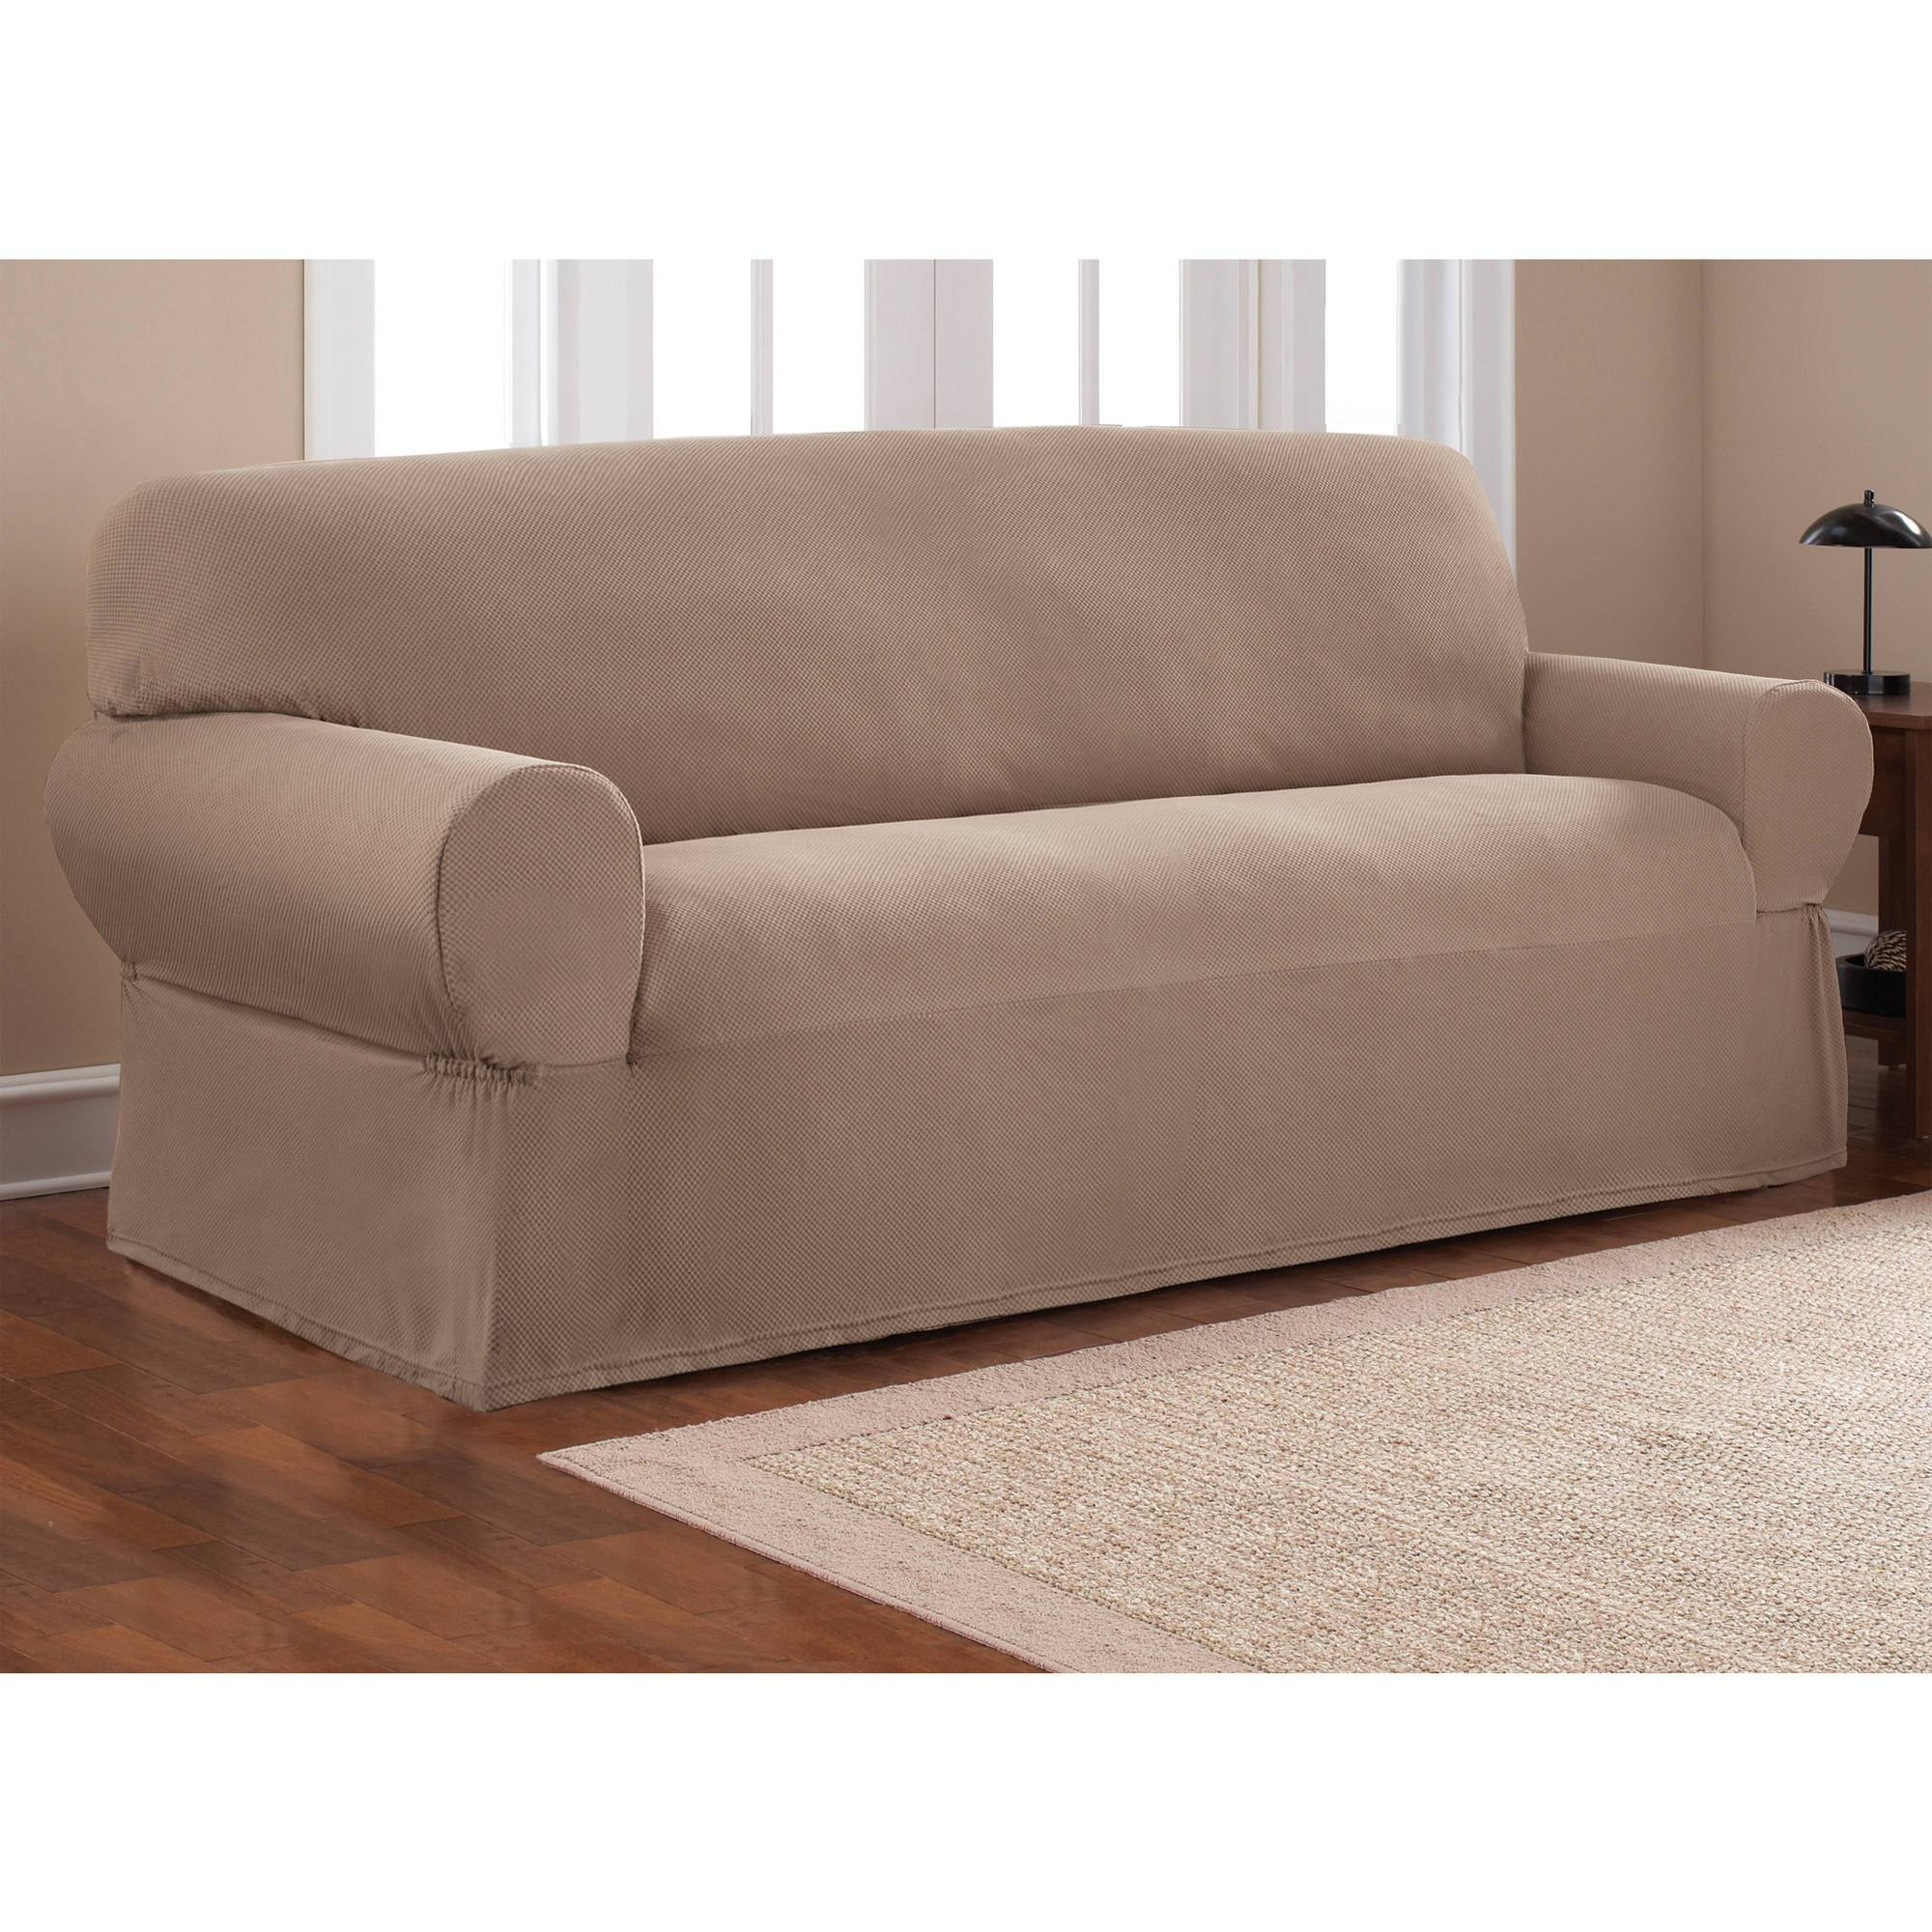 Mainstays 1-Piece Stretch Fabric Sofa Slipcover - Walmart inside Slipcovers for 3 Cushion Sofas (Image 8 of 15)